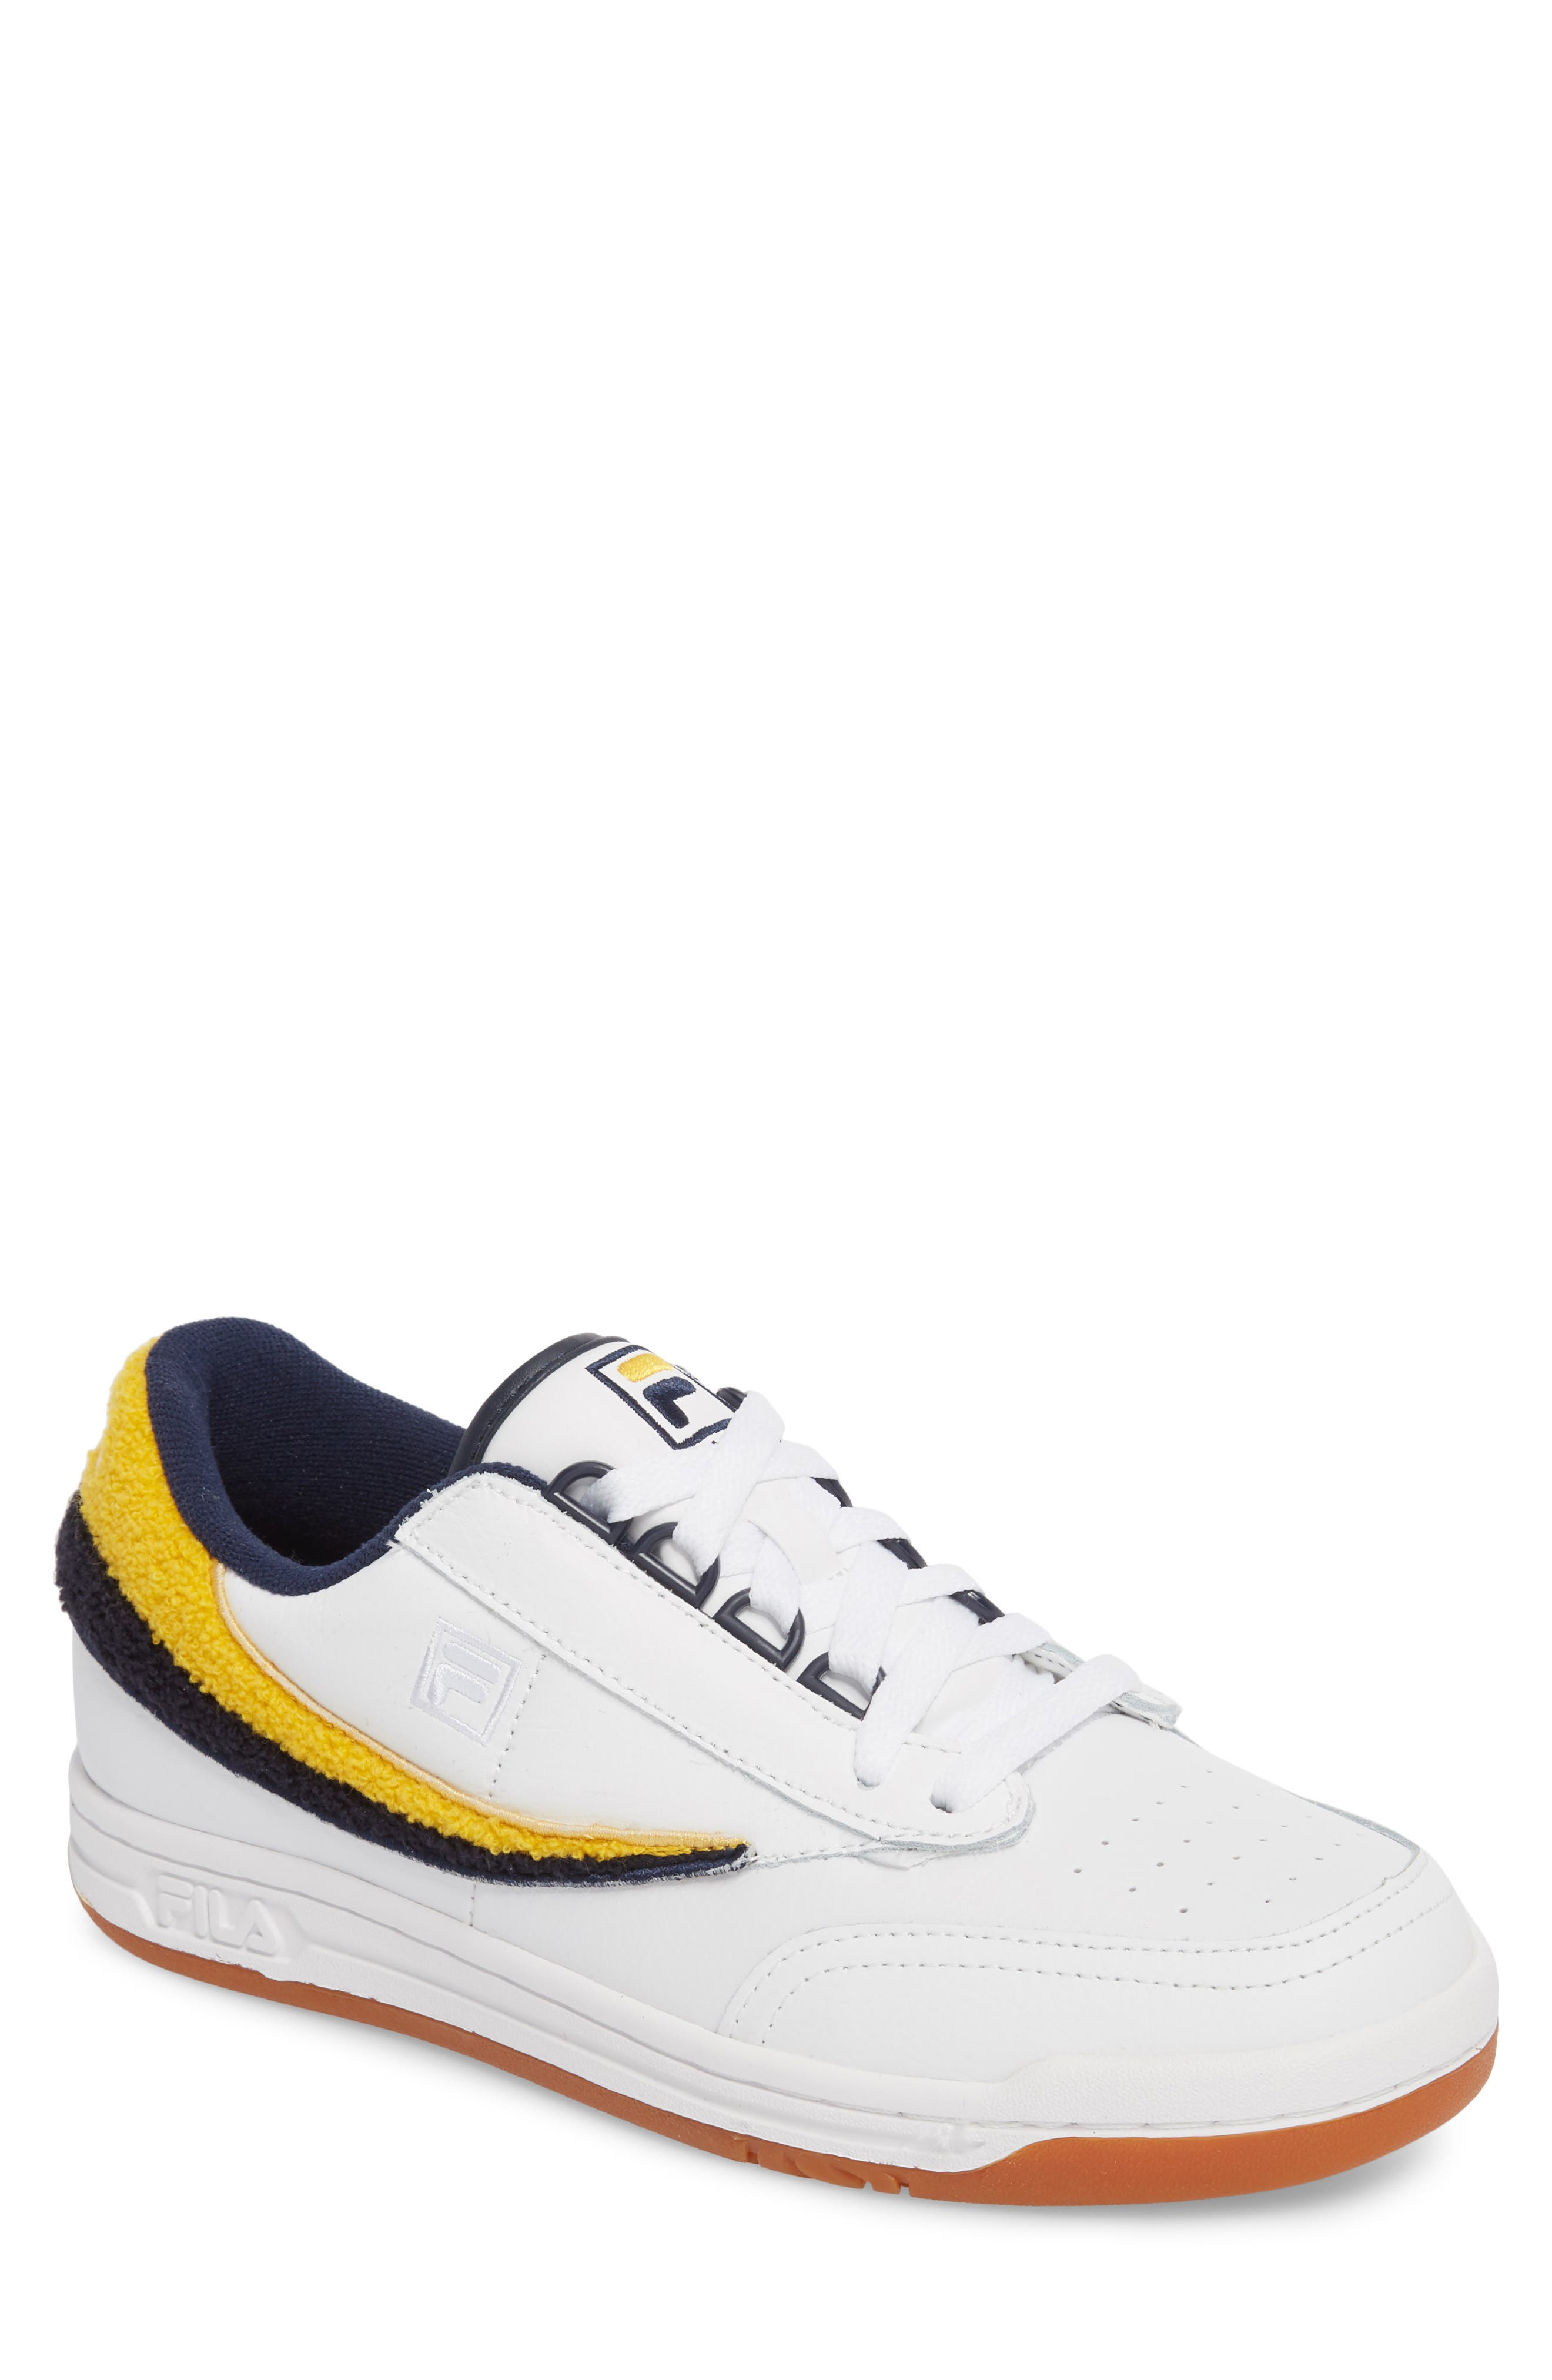 Alternate Image 1 Selected - FILA Original Varsity Sneaker (Men)